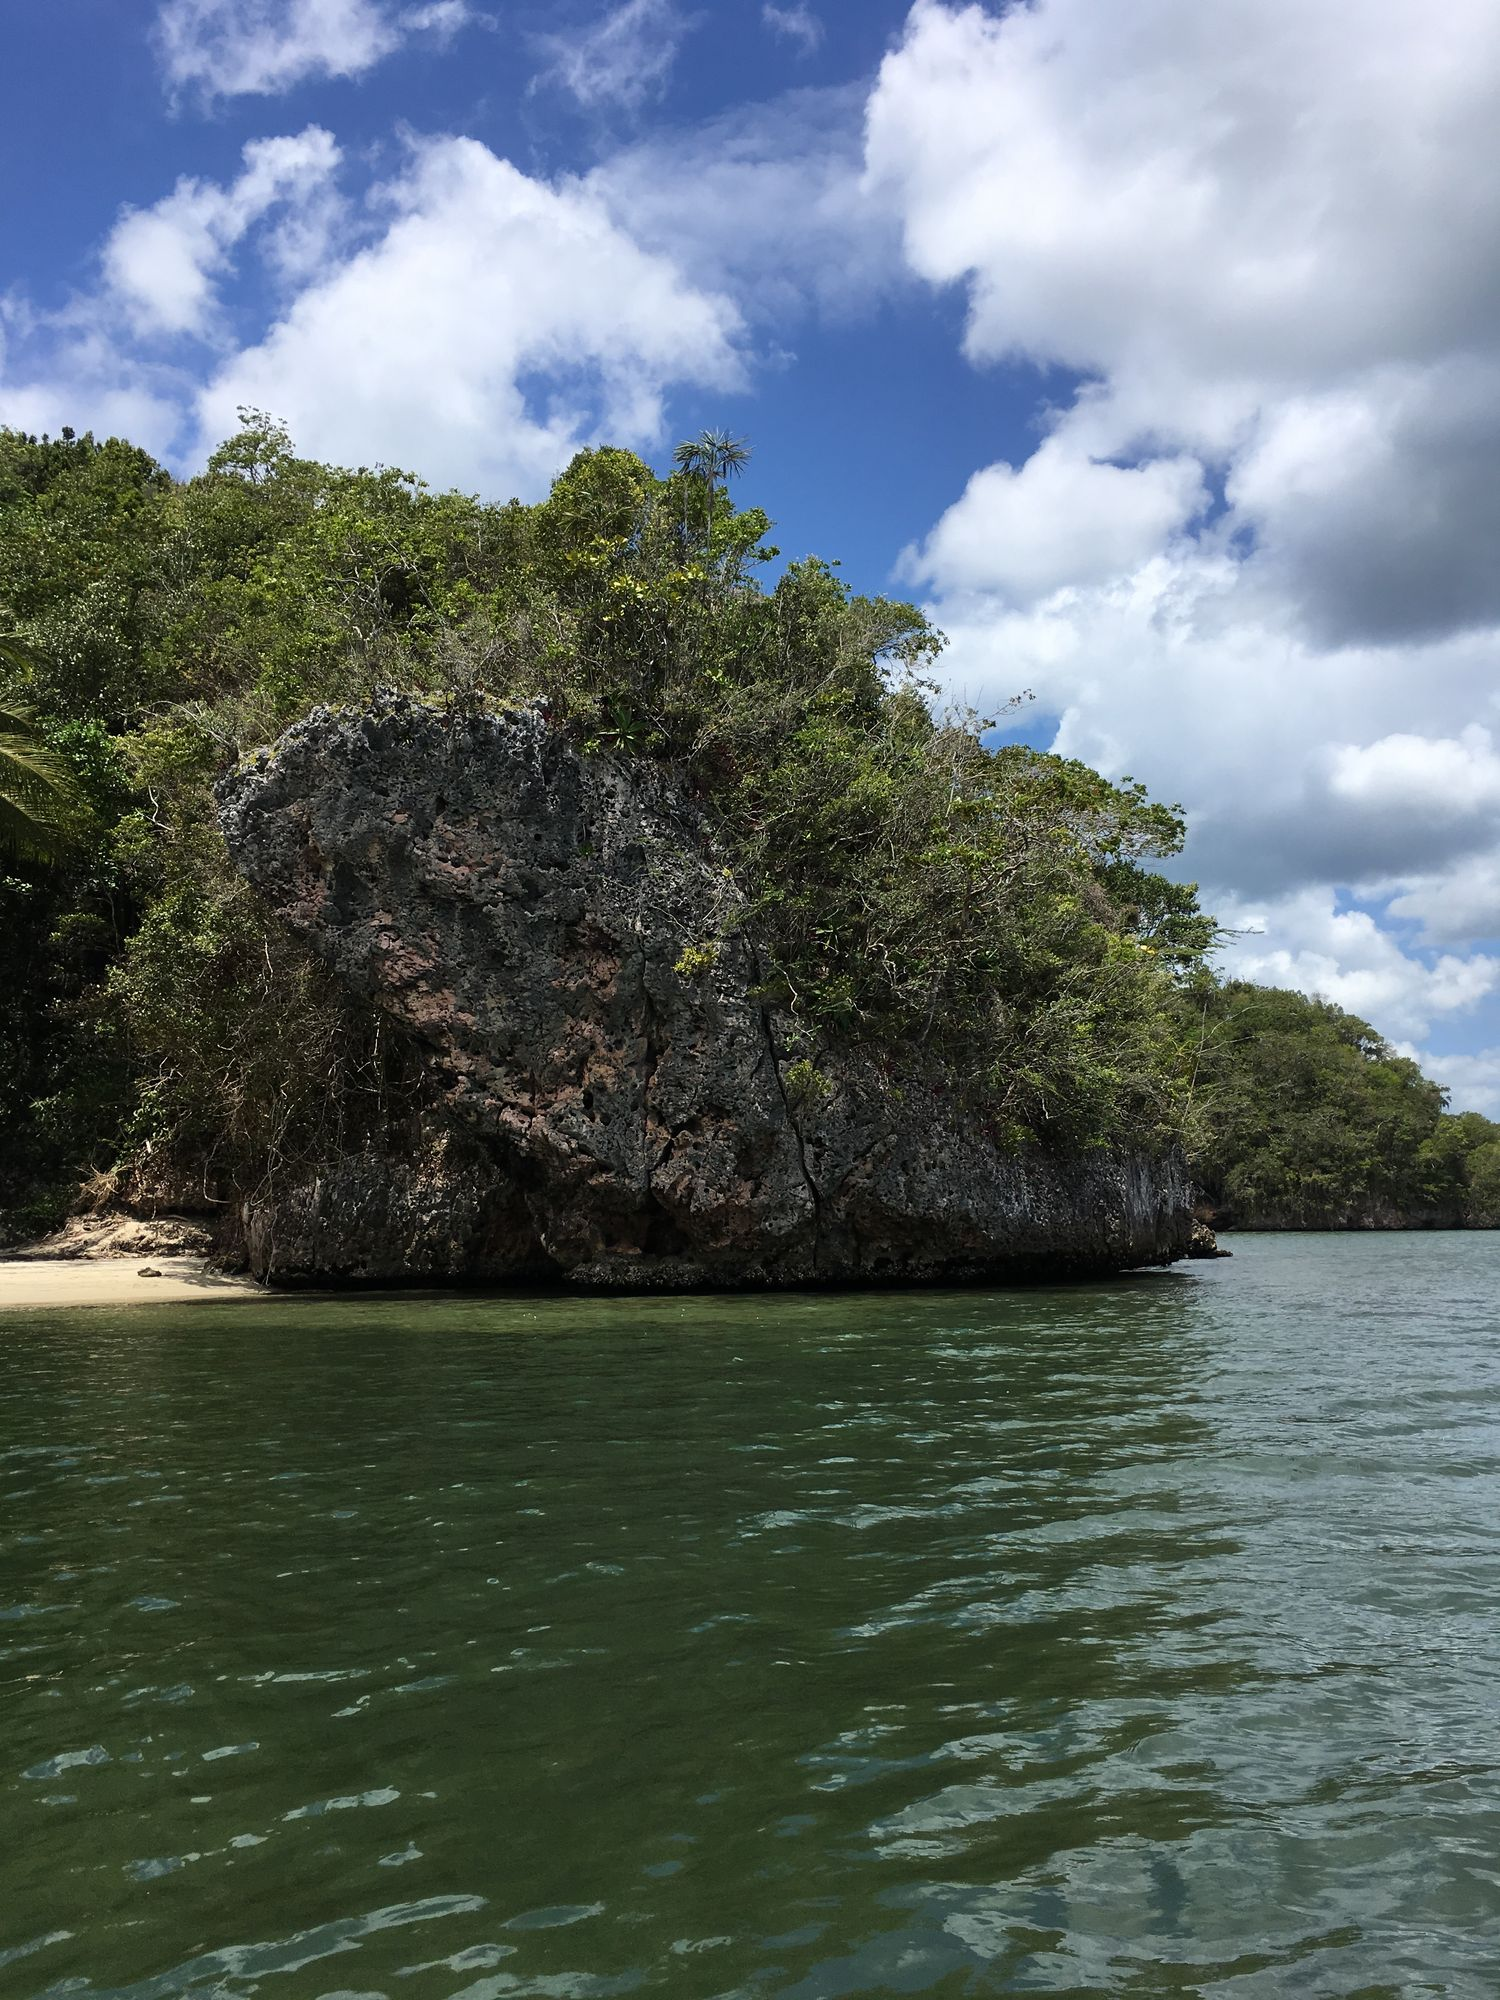 Parc national de Los Haitises